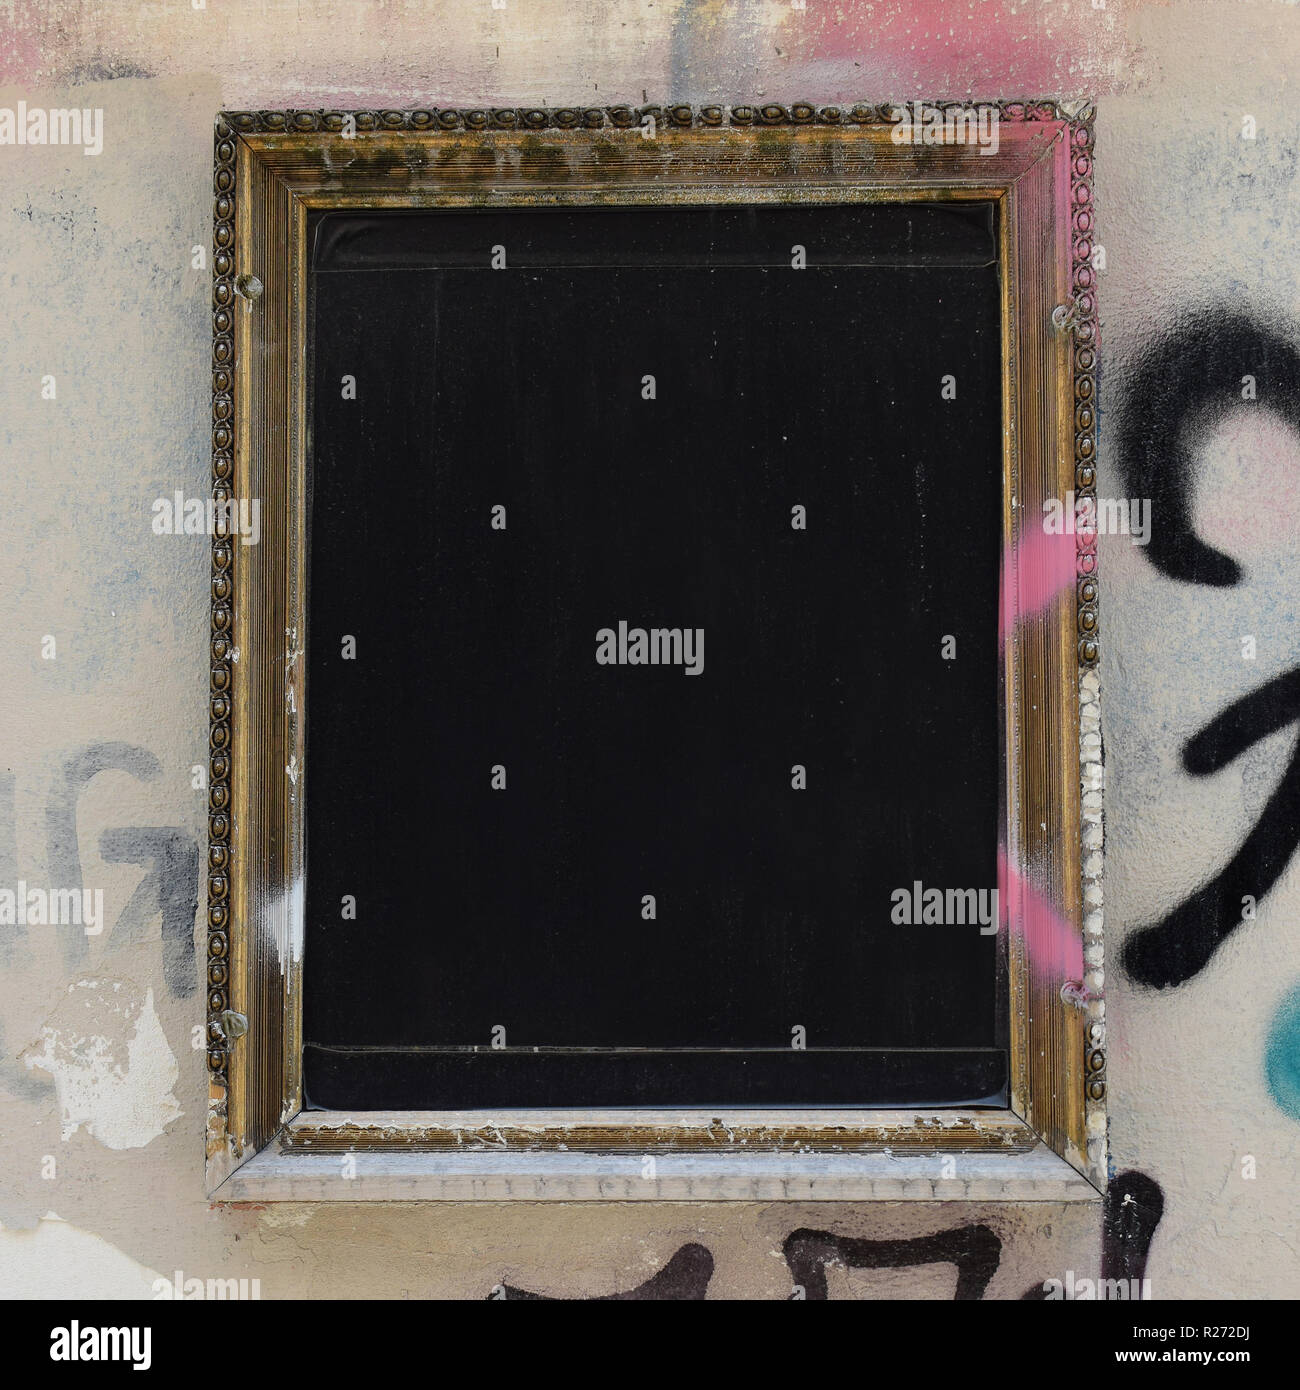 Blank Wooden Picture Frame On Grungy Spray Painted Wall Background